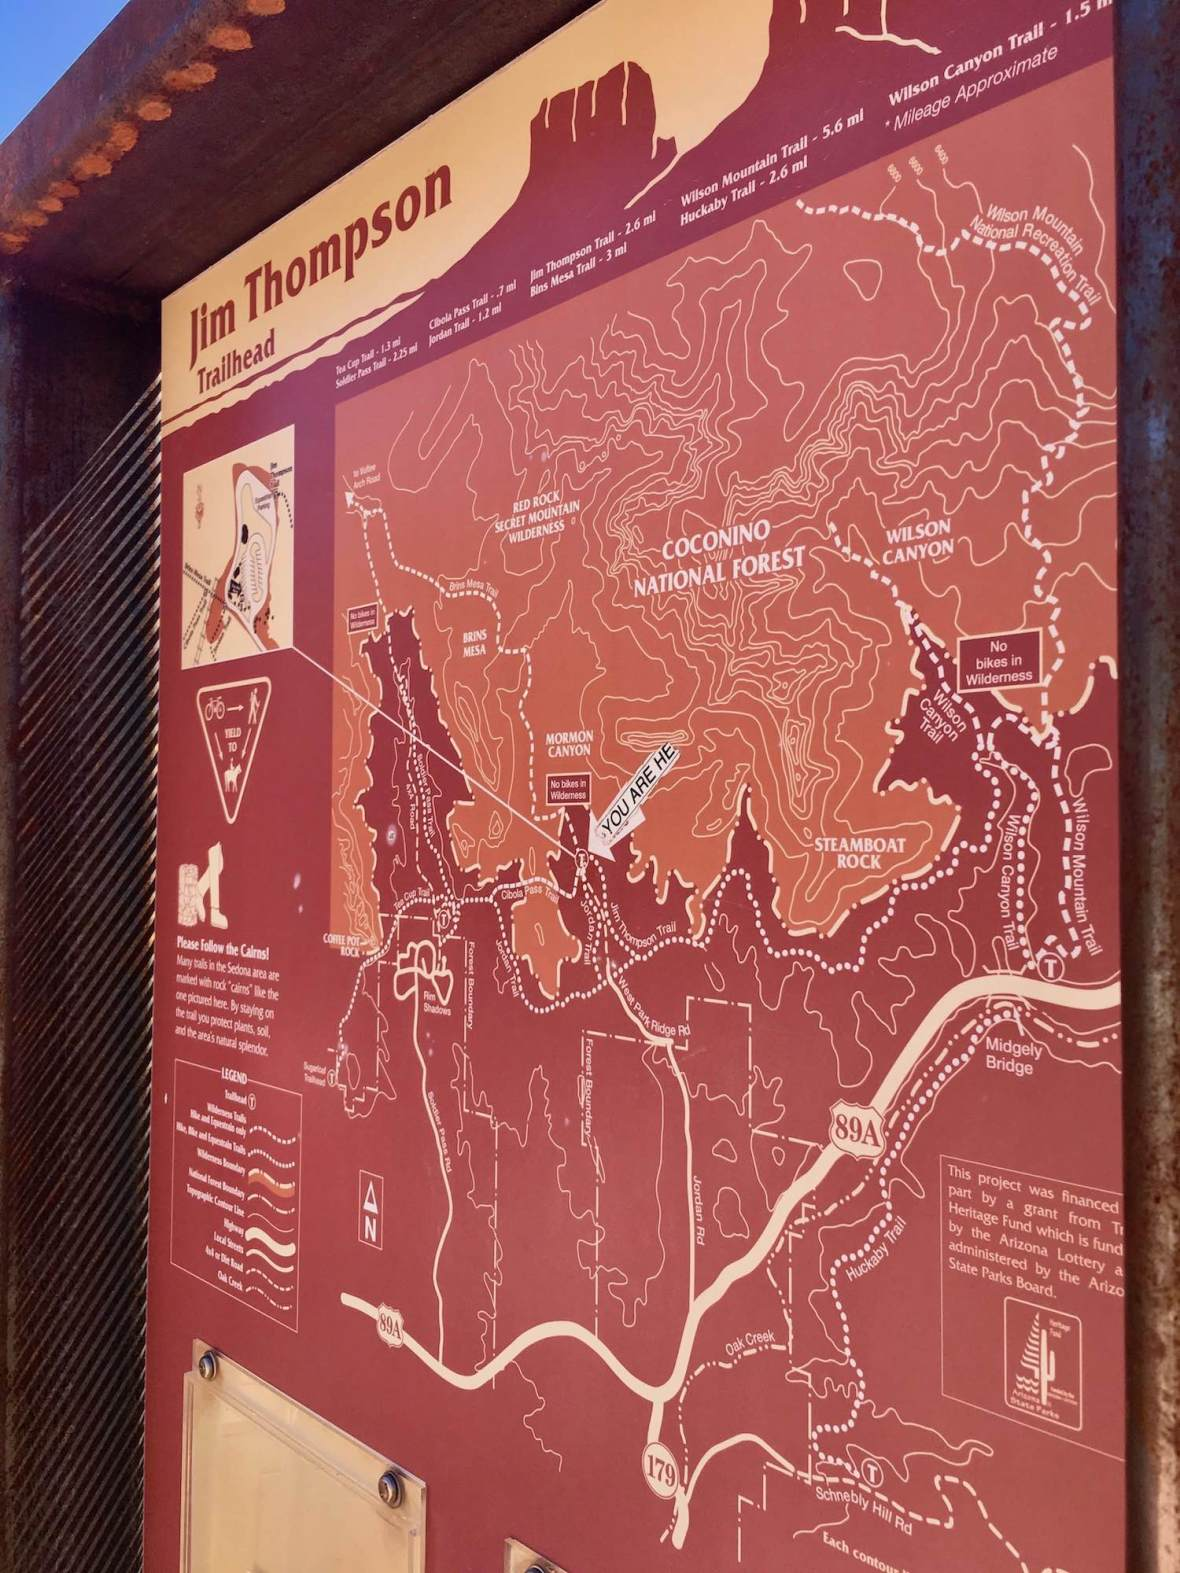 Jim Thompson trailhead map of Coconino National Forest in Sedona, Arizona